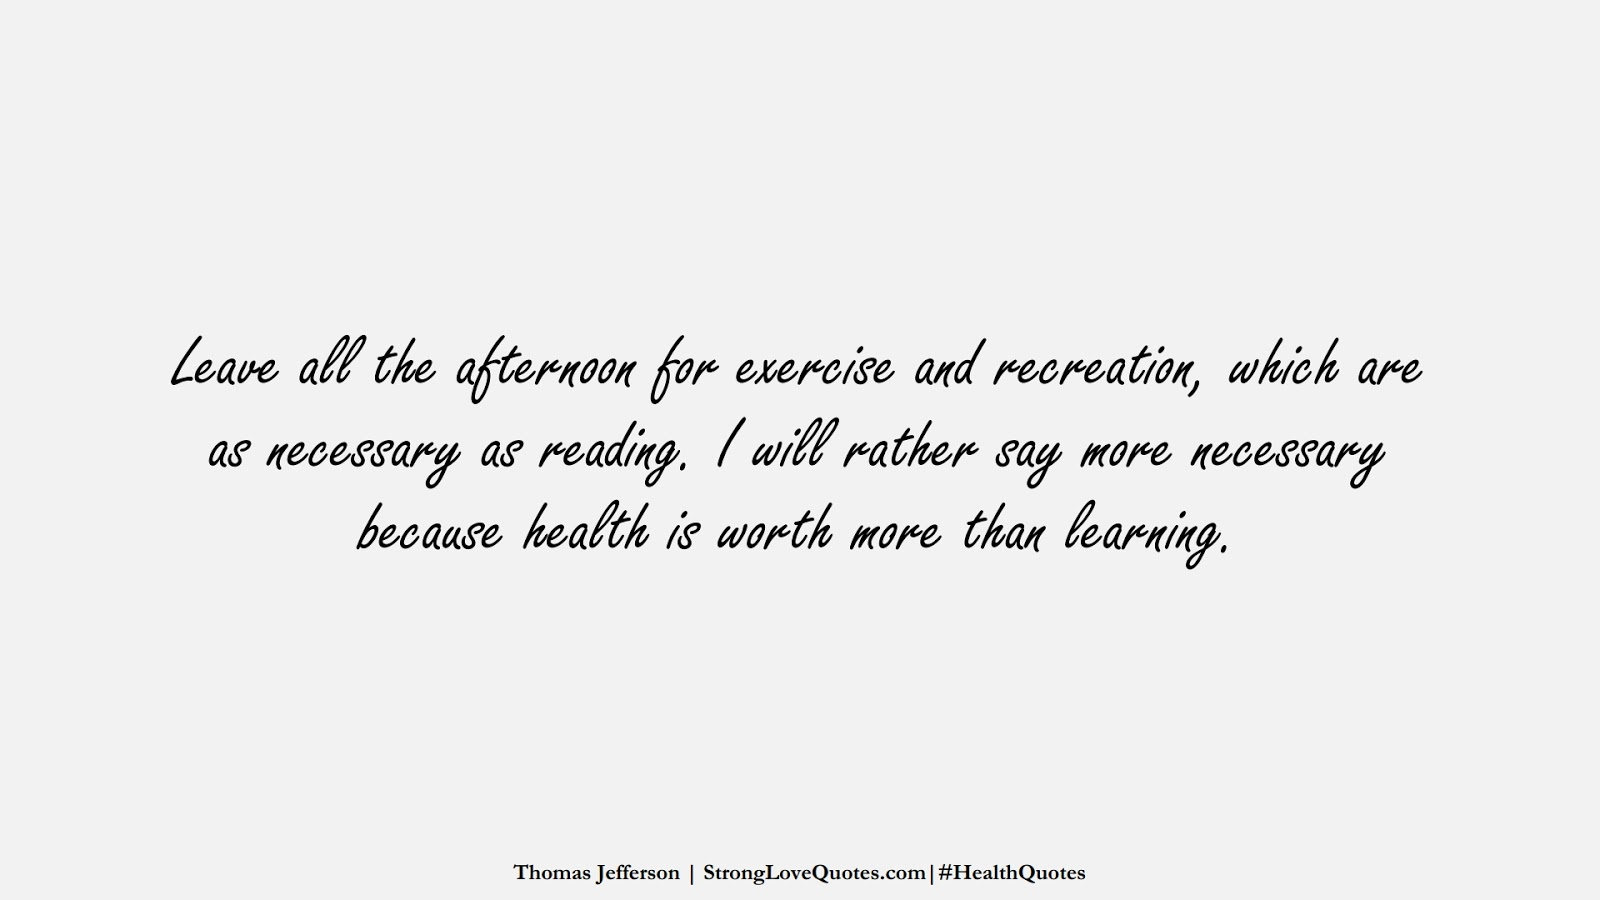 Leave all the afternoon for exercise and recreation, which are as necessary as reading. I will rather say more necessary because health is worth more than learning. (Thomas Jefferson);  #HealthQuotes